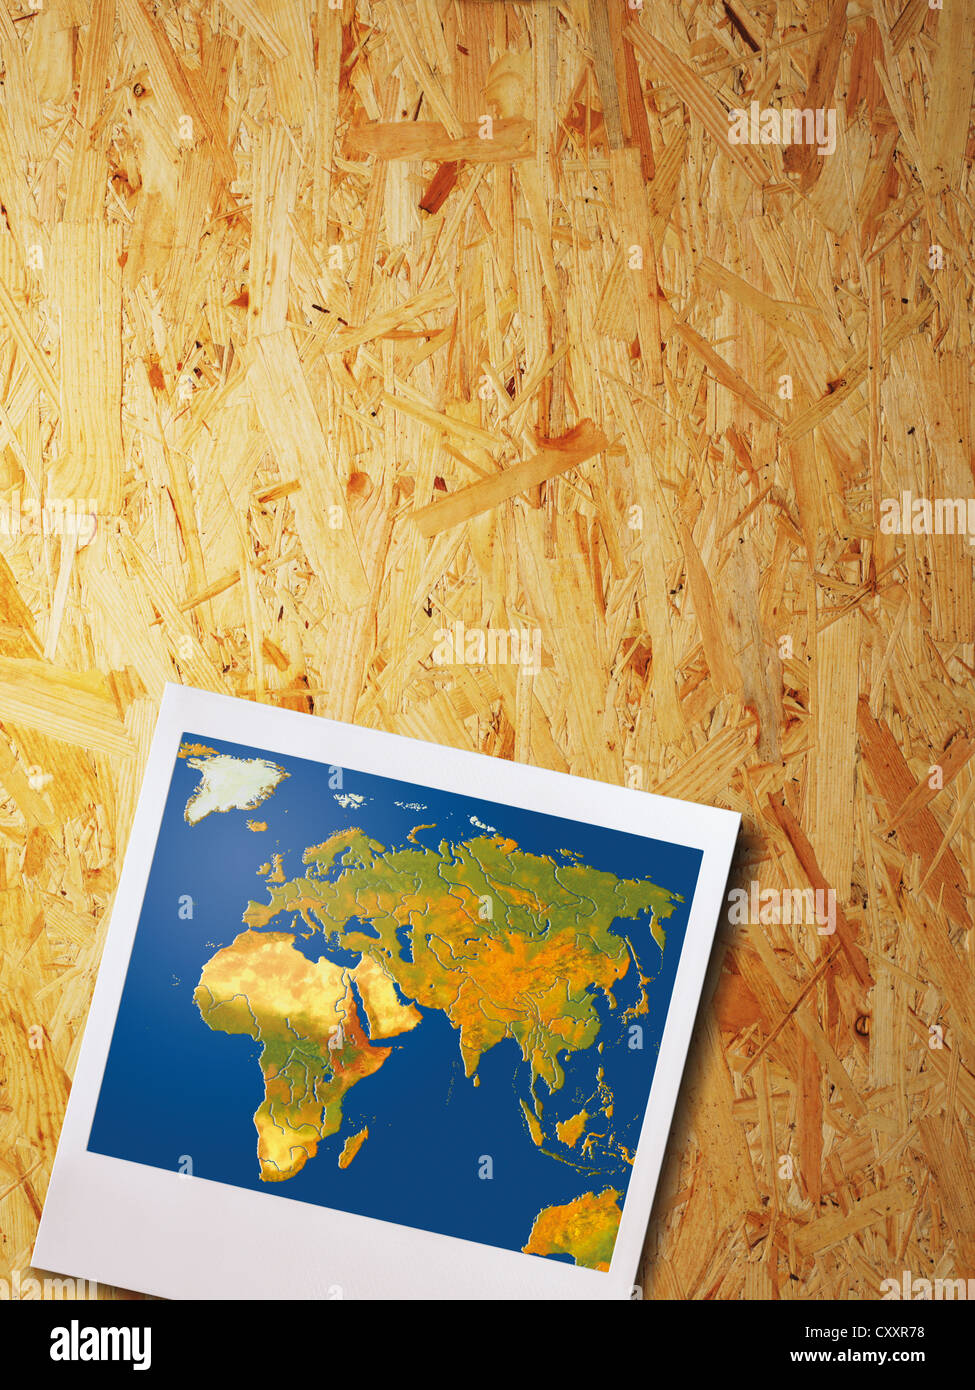 Map europe asia stock photos map europe asia stock images alamy polaroid photo with map of europe asia africa hanging on a wood panel gumiabroncs Gallery